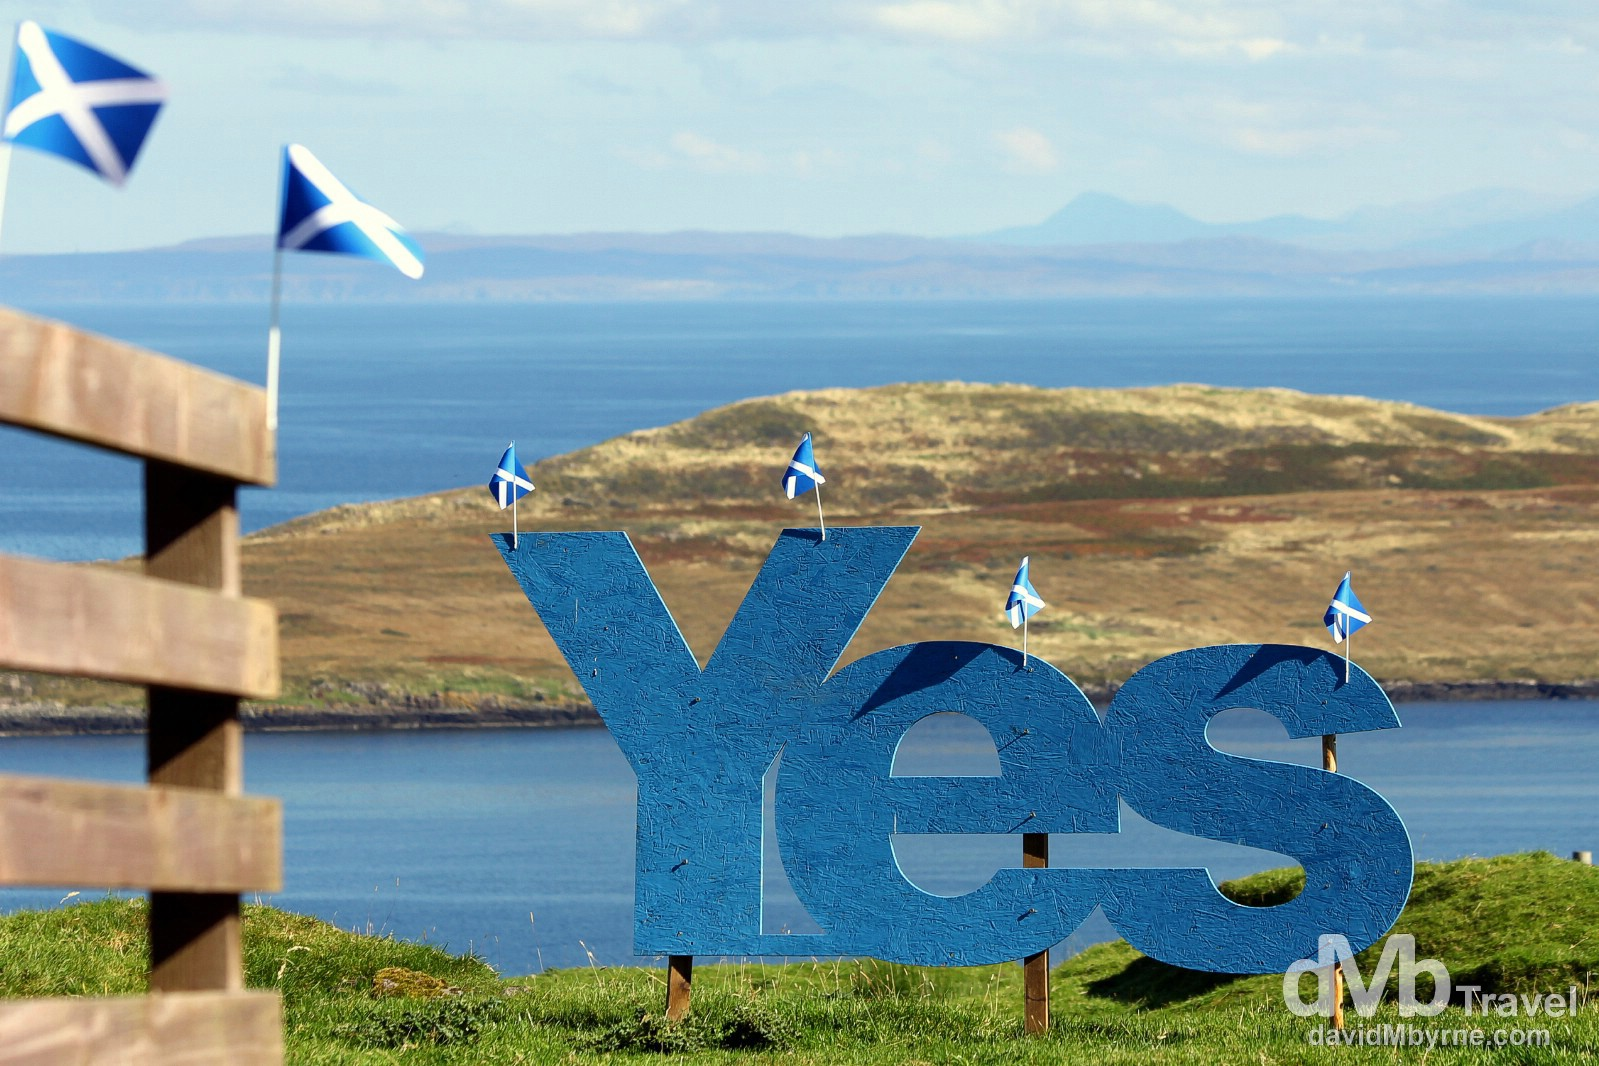 It's a big 'Yes' at the tip of the Trotternish peninsula on the Isle of Skye, Scotland. September 17, 2014.